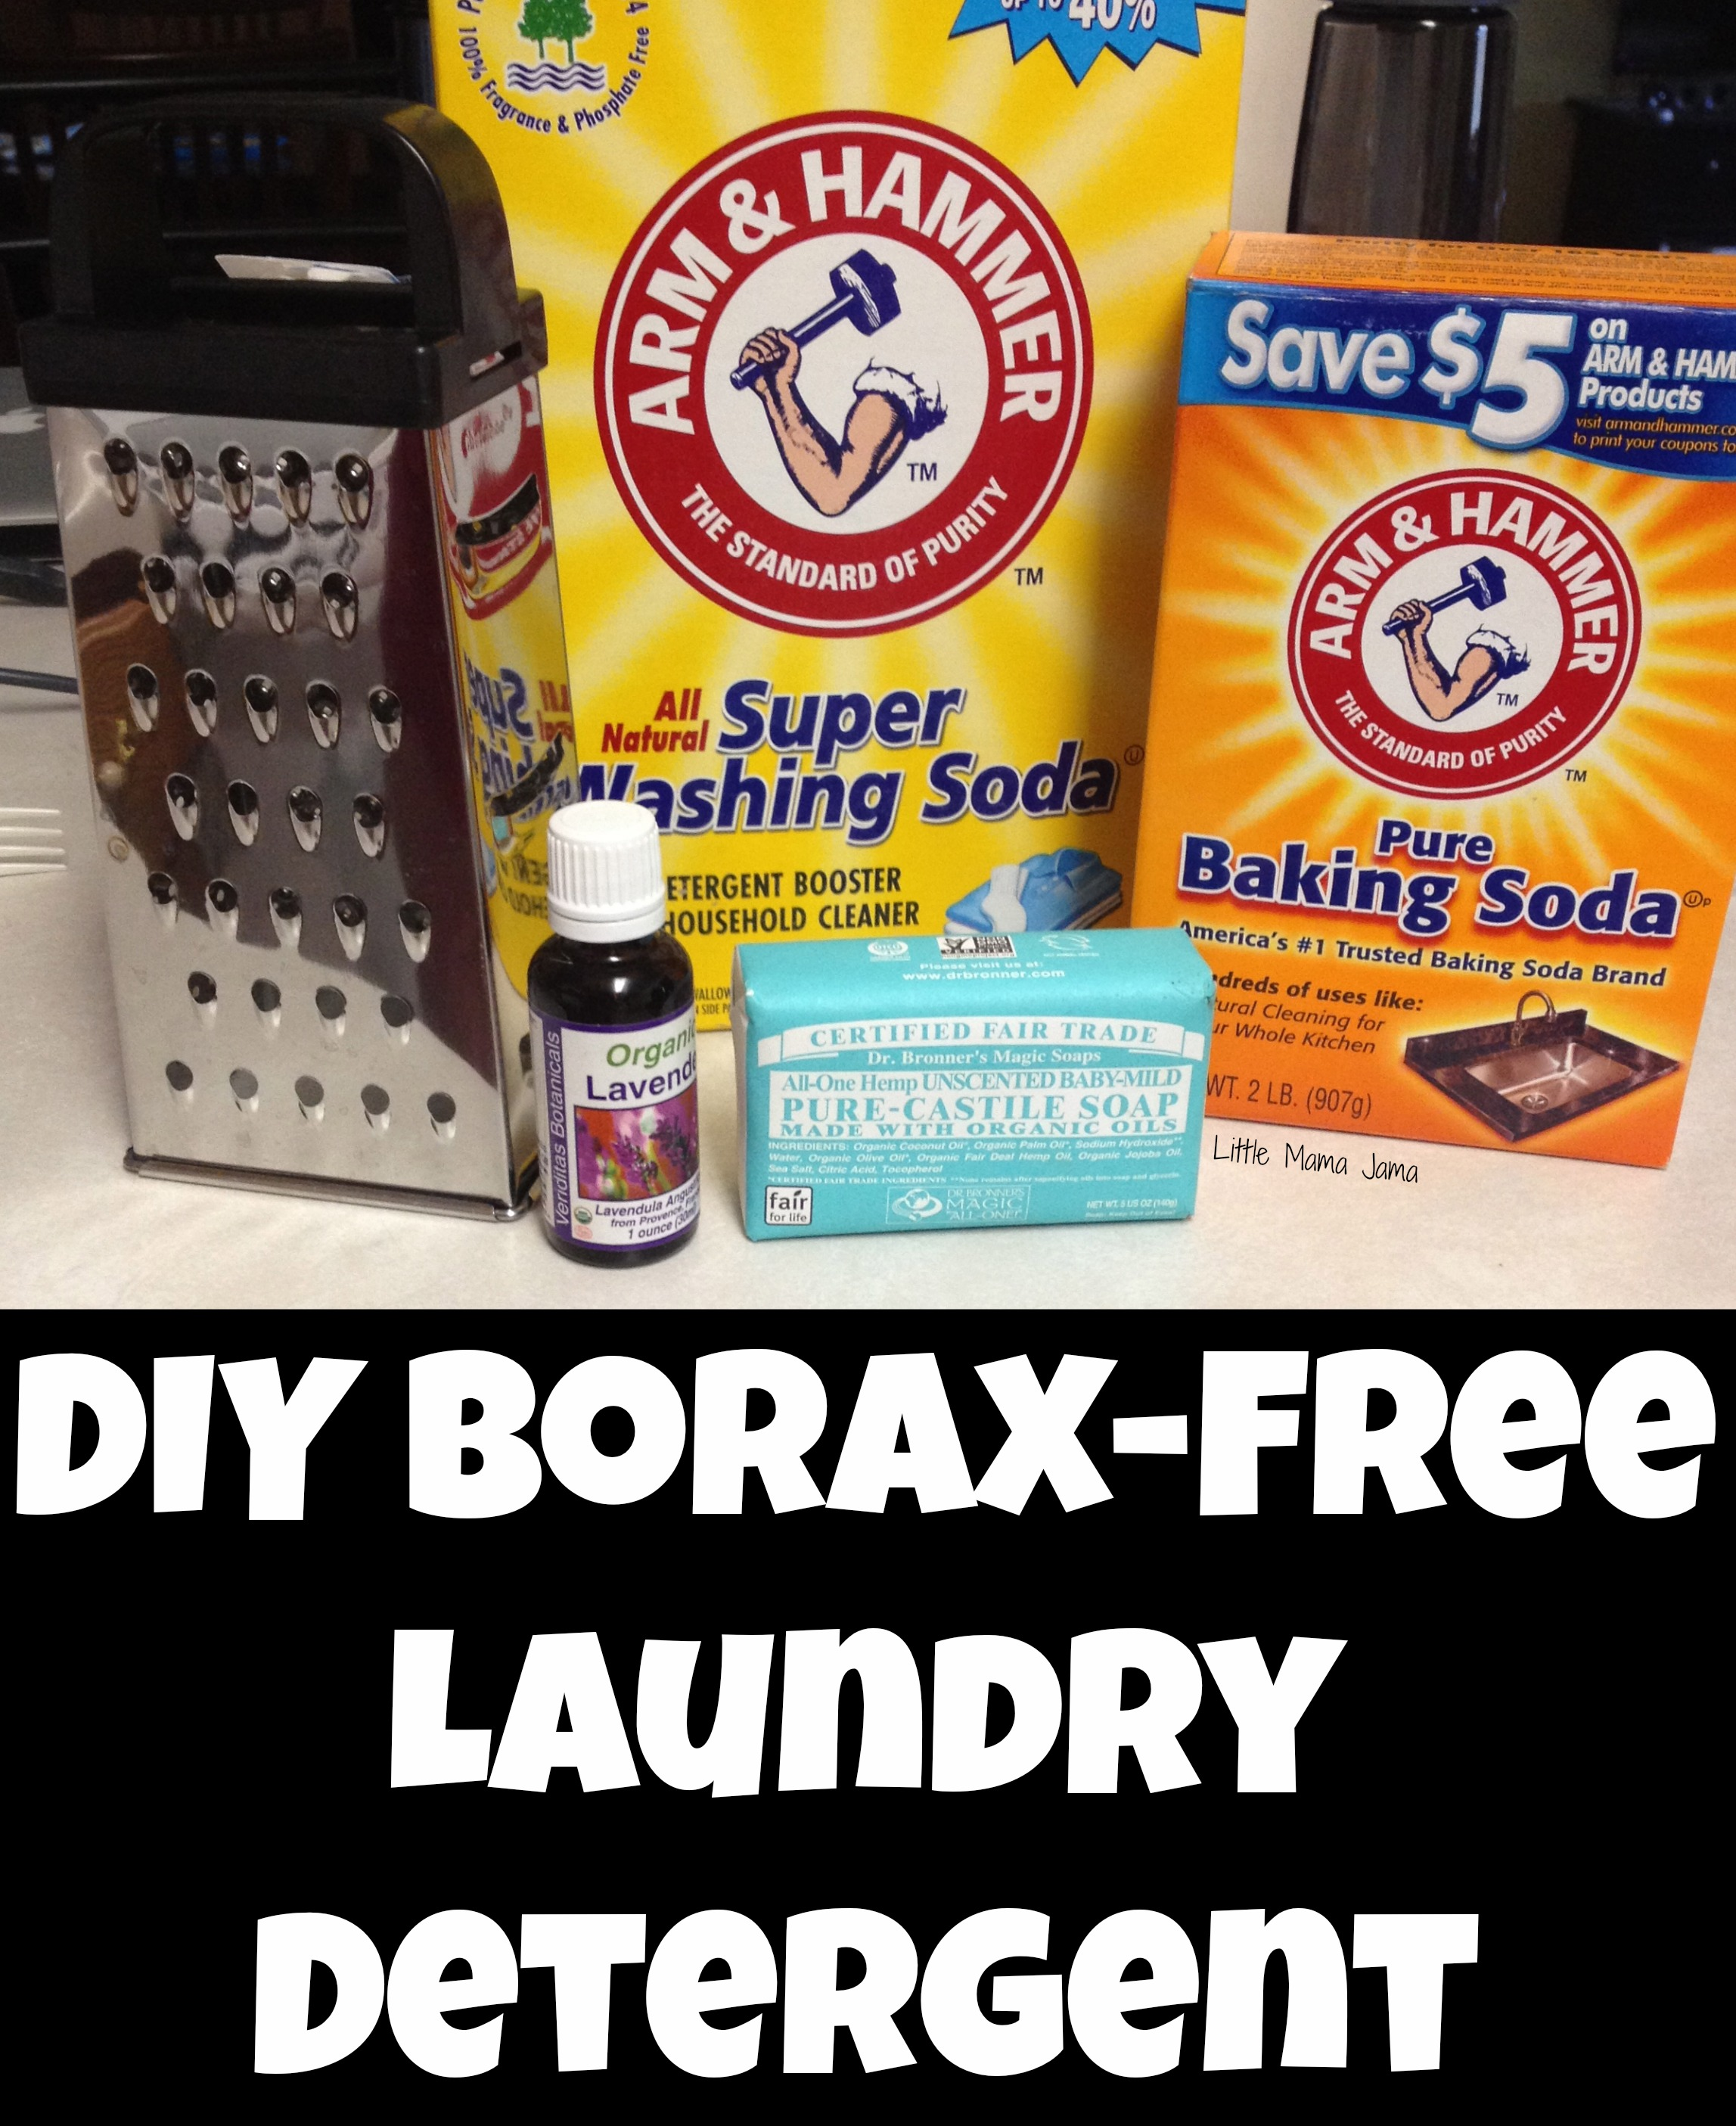 Natural, DIY Borax-Free Laundry Detergent